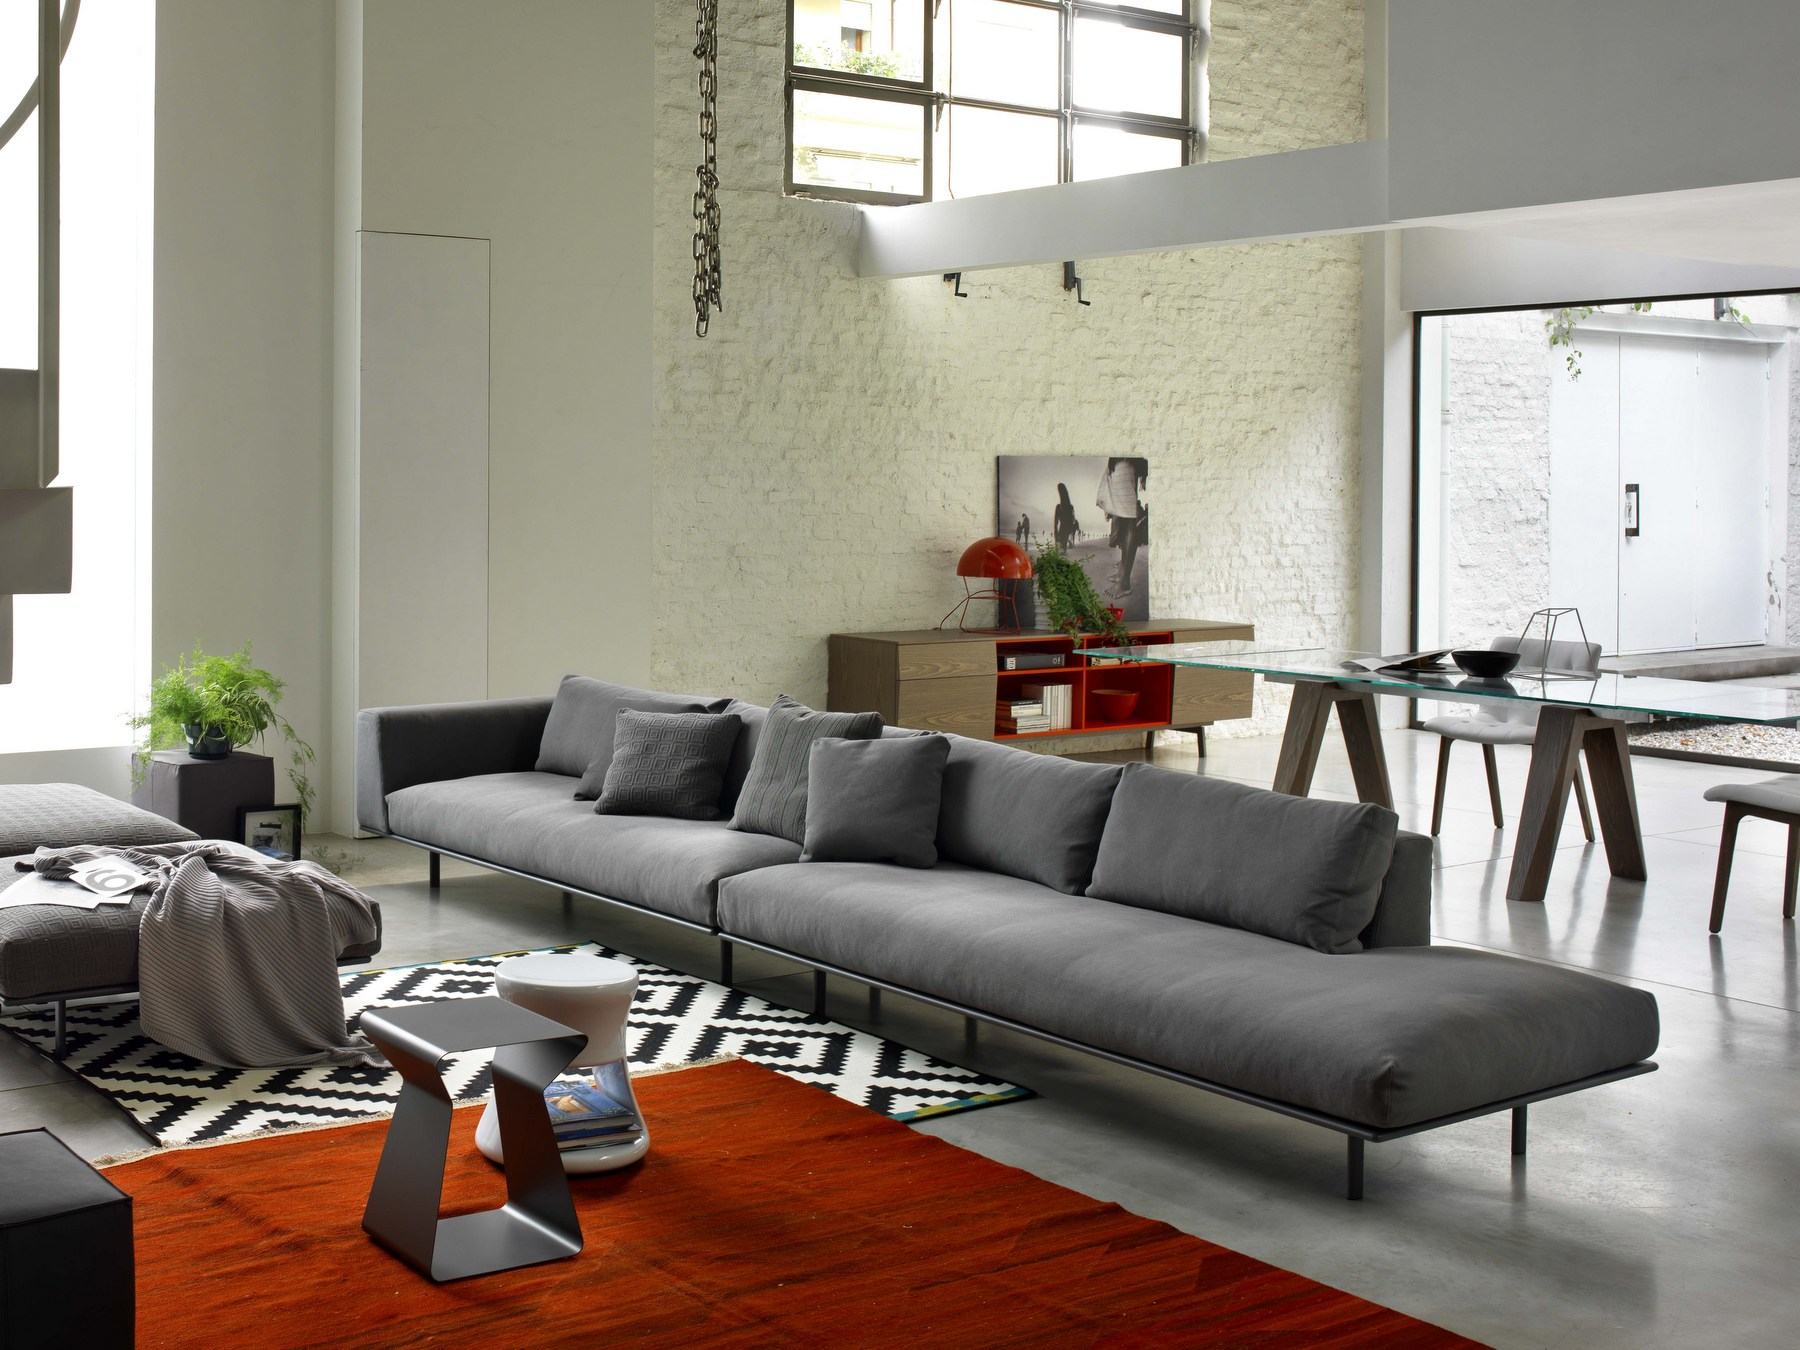 dakota 5 seater sofa by bontempi casa design carlo bimbi. Black Bedroom Furniture Sets. Home Design Ideas